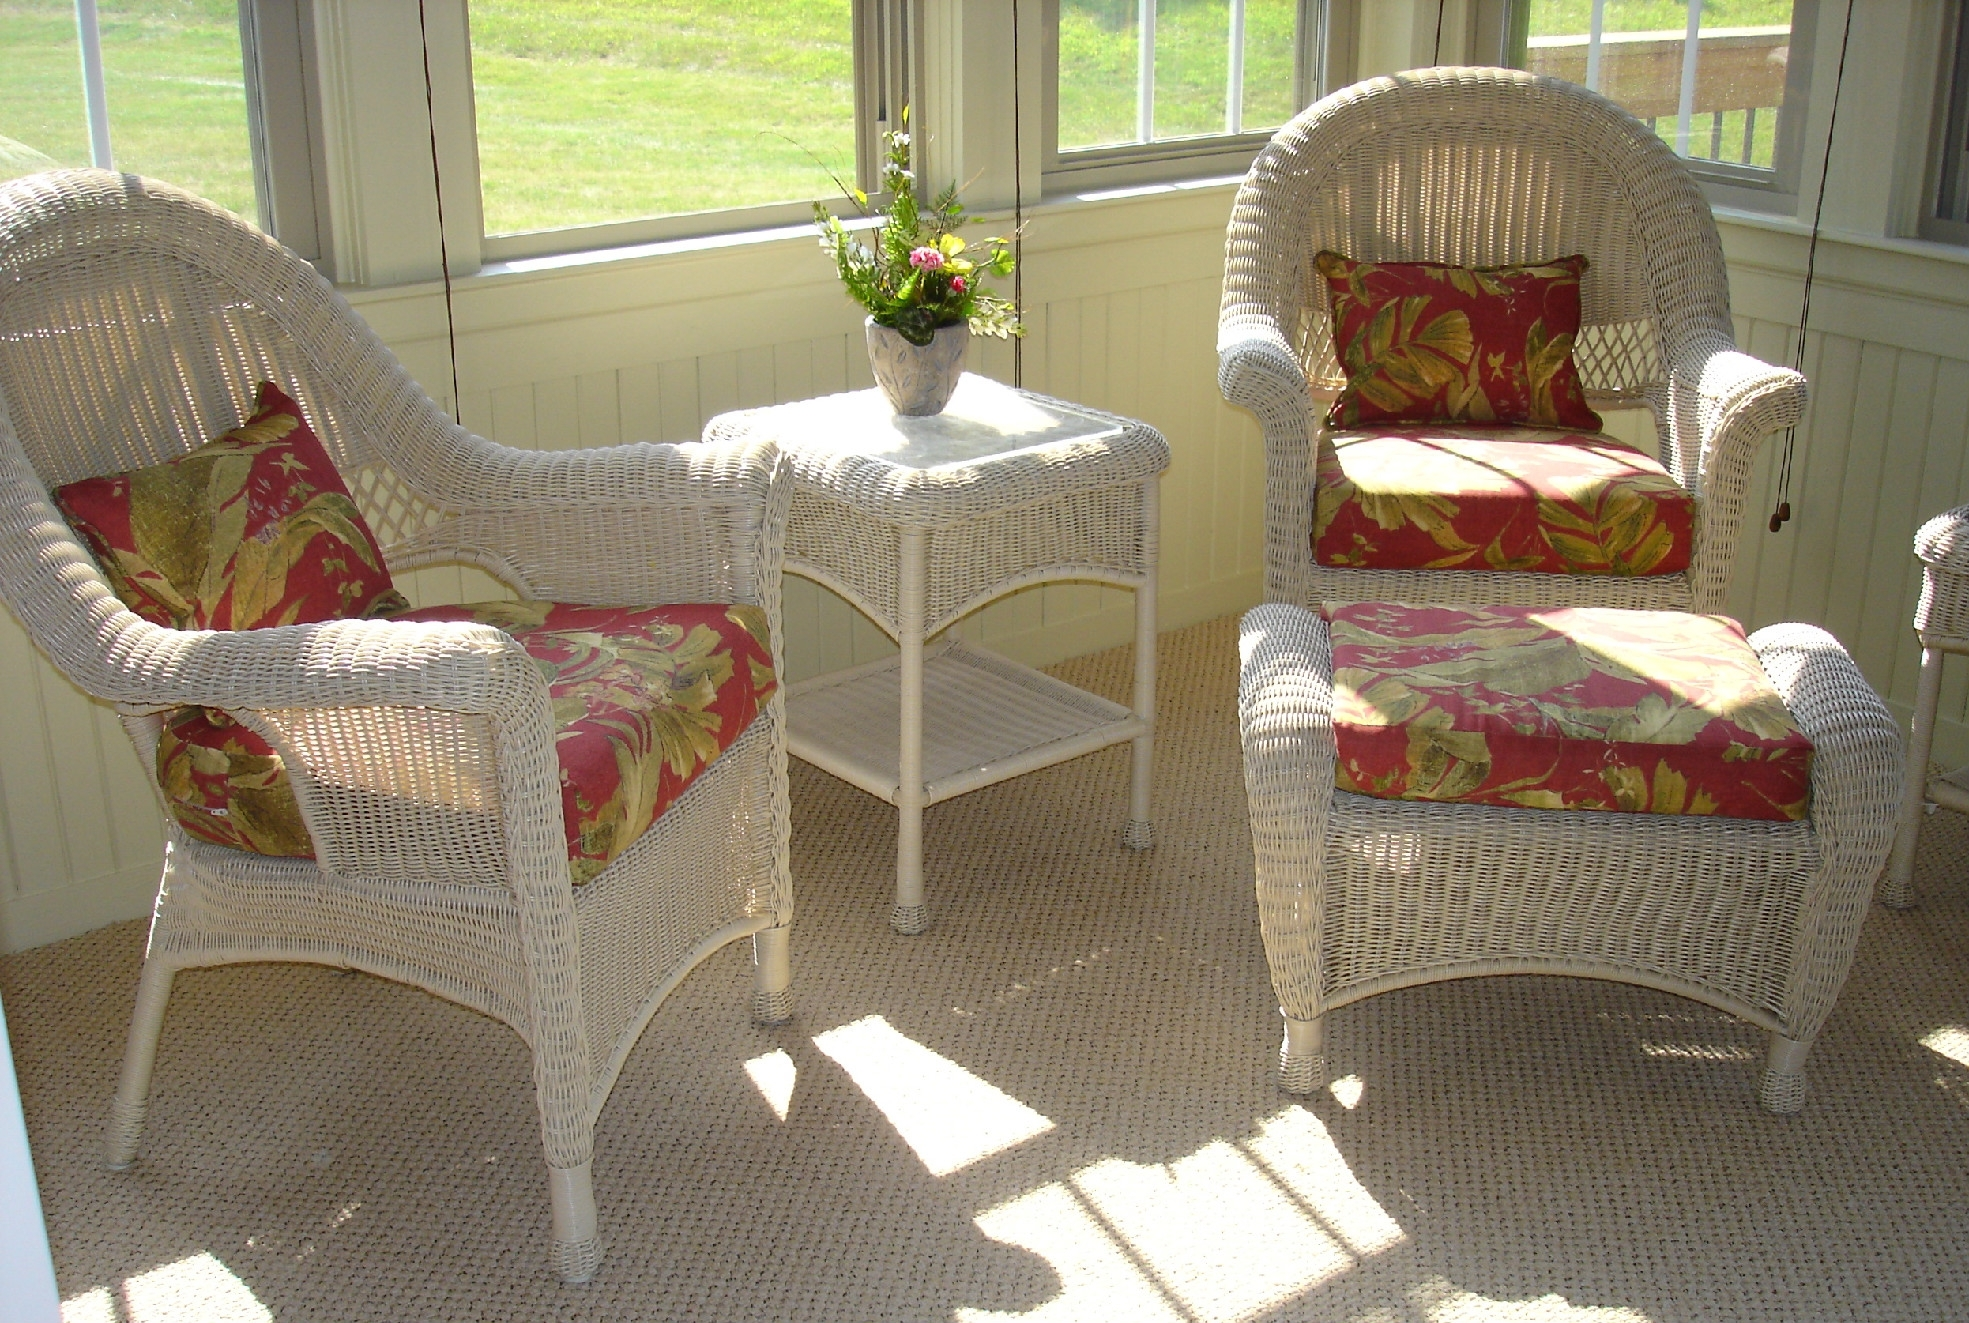 Patio Wicker Chair Cushions Glf Home Pros Throughout Outdoor Wicker Seat Cushions Very Elegant Outdoor Wicker Seat Cushions